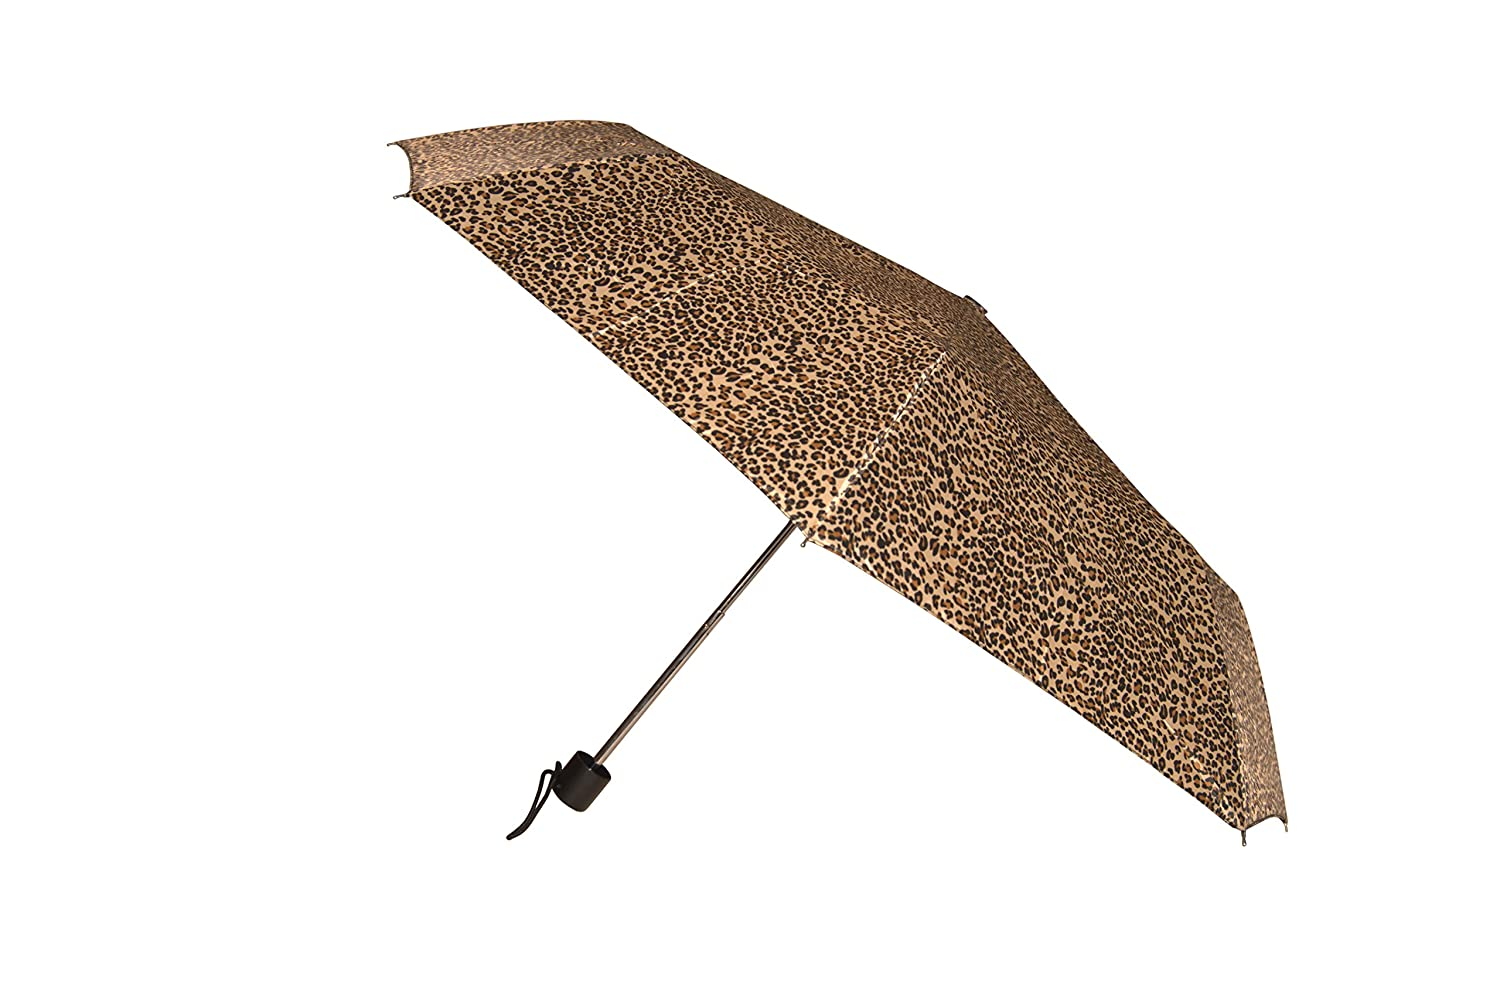 Amazon.com | Raines Automatic Folding Umbrella with 42-inch Wide Canopy and Attached Carrying Loop, Leopard, 3-pack | Umbrellas